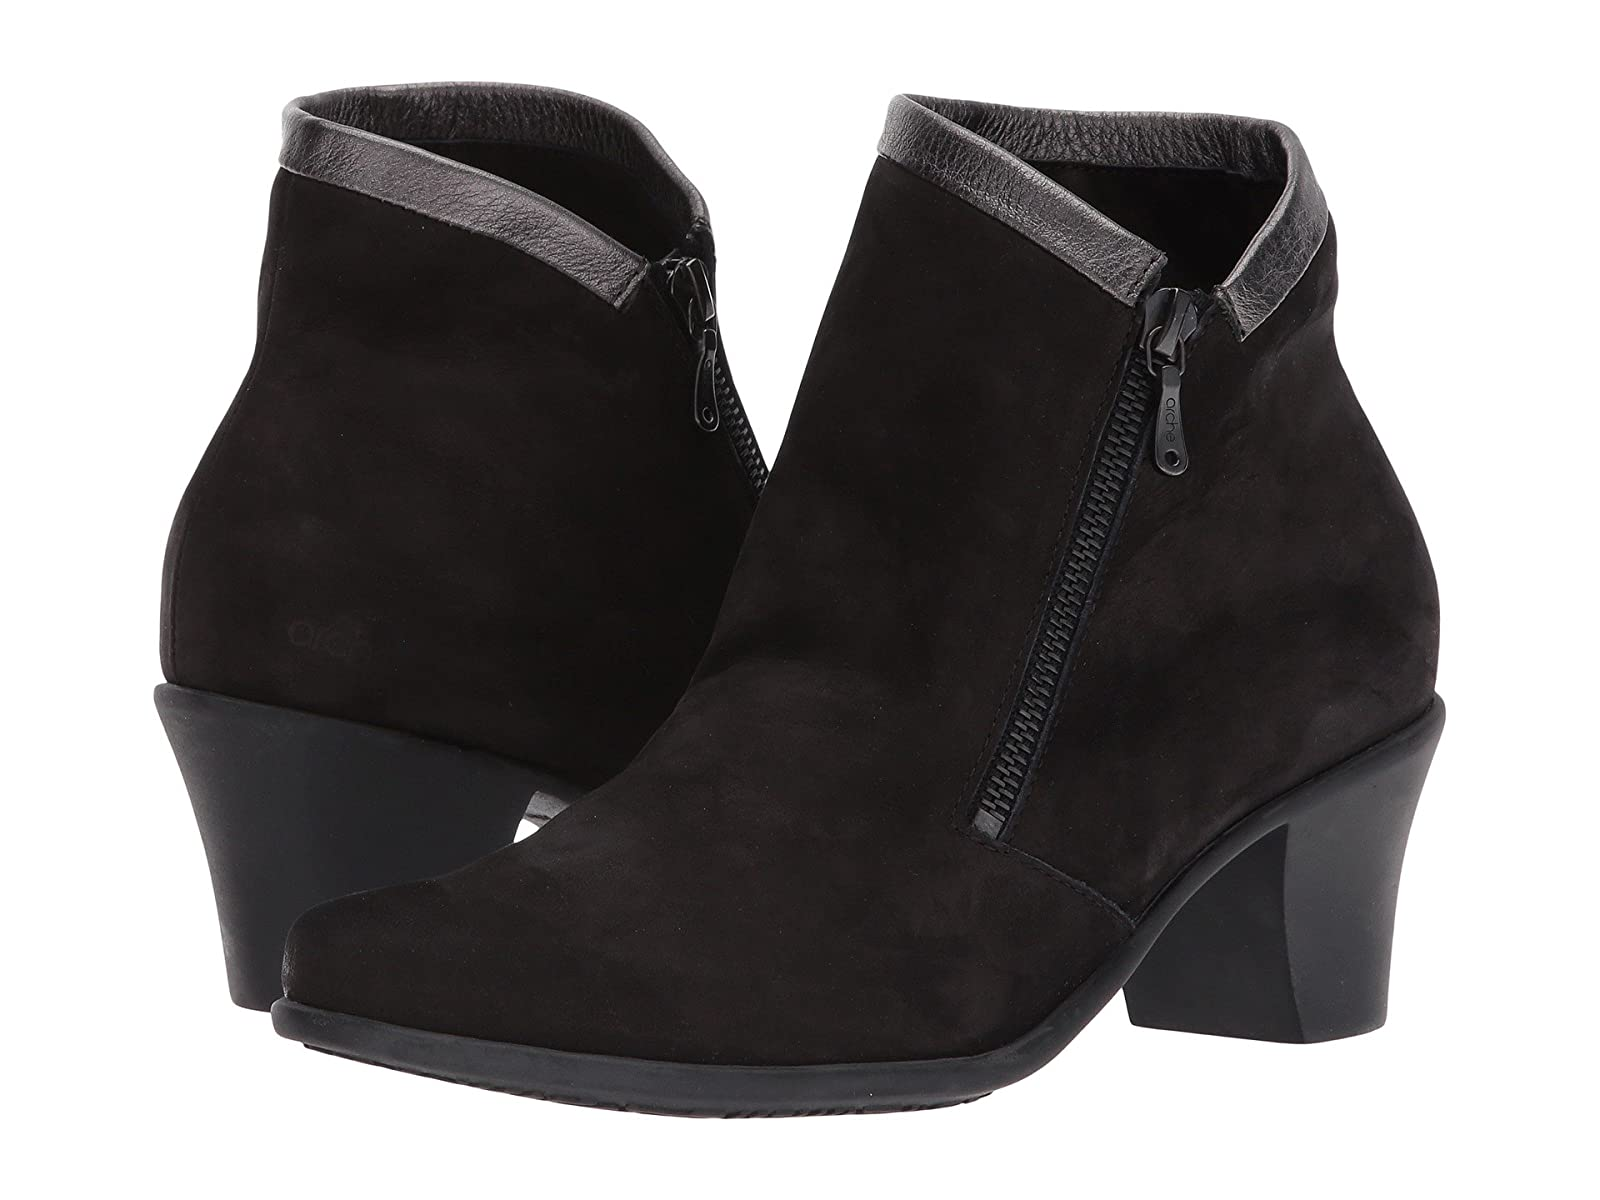 Arche MaonieSelling fashionable and eye-catching shoes